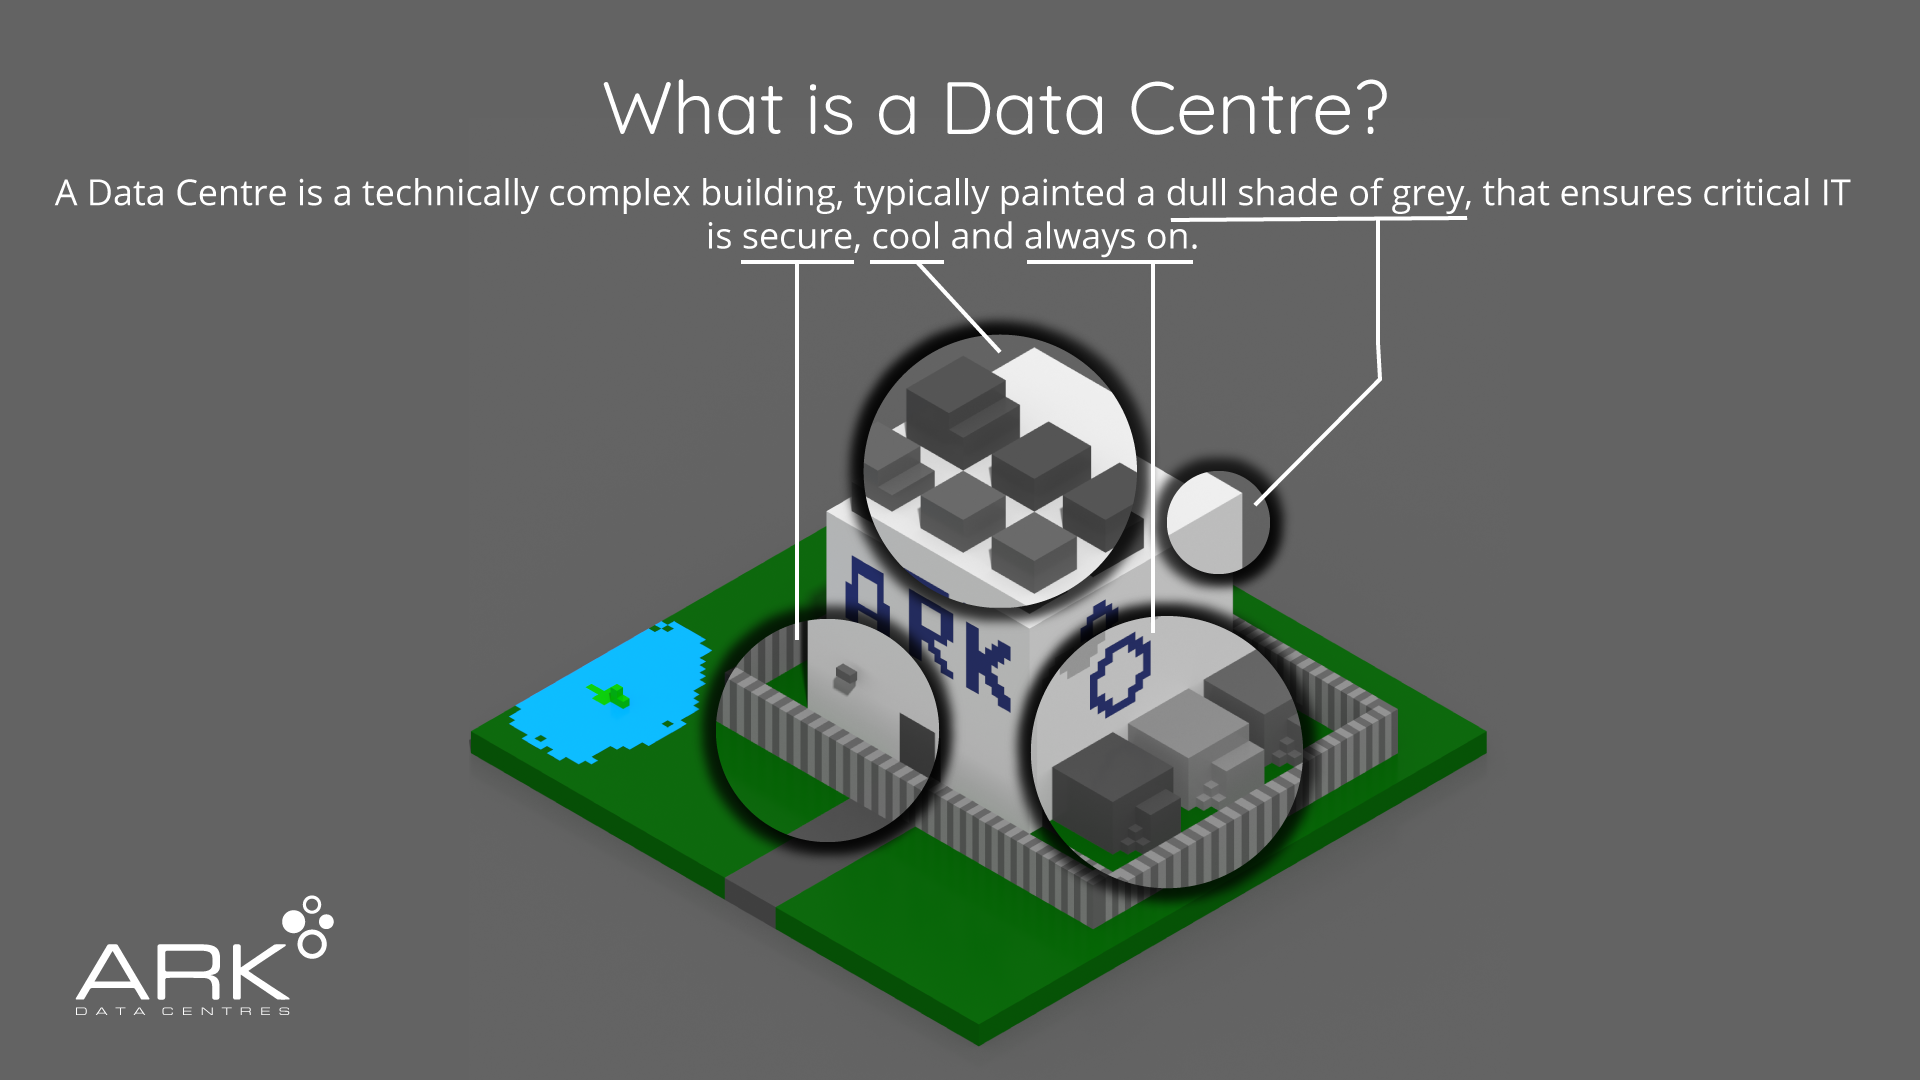 Isometric voxel model of a white ARK data centre, with feature highlights: security, cooling, N+1 redundant electricity systems.